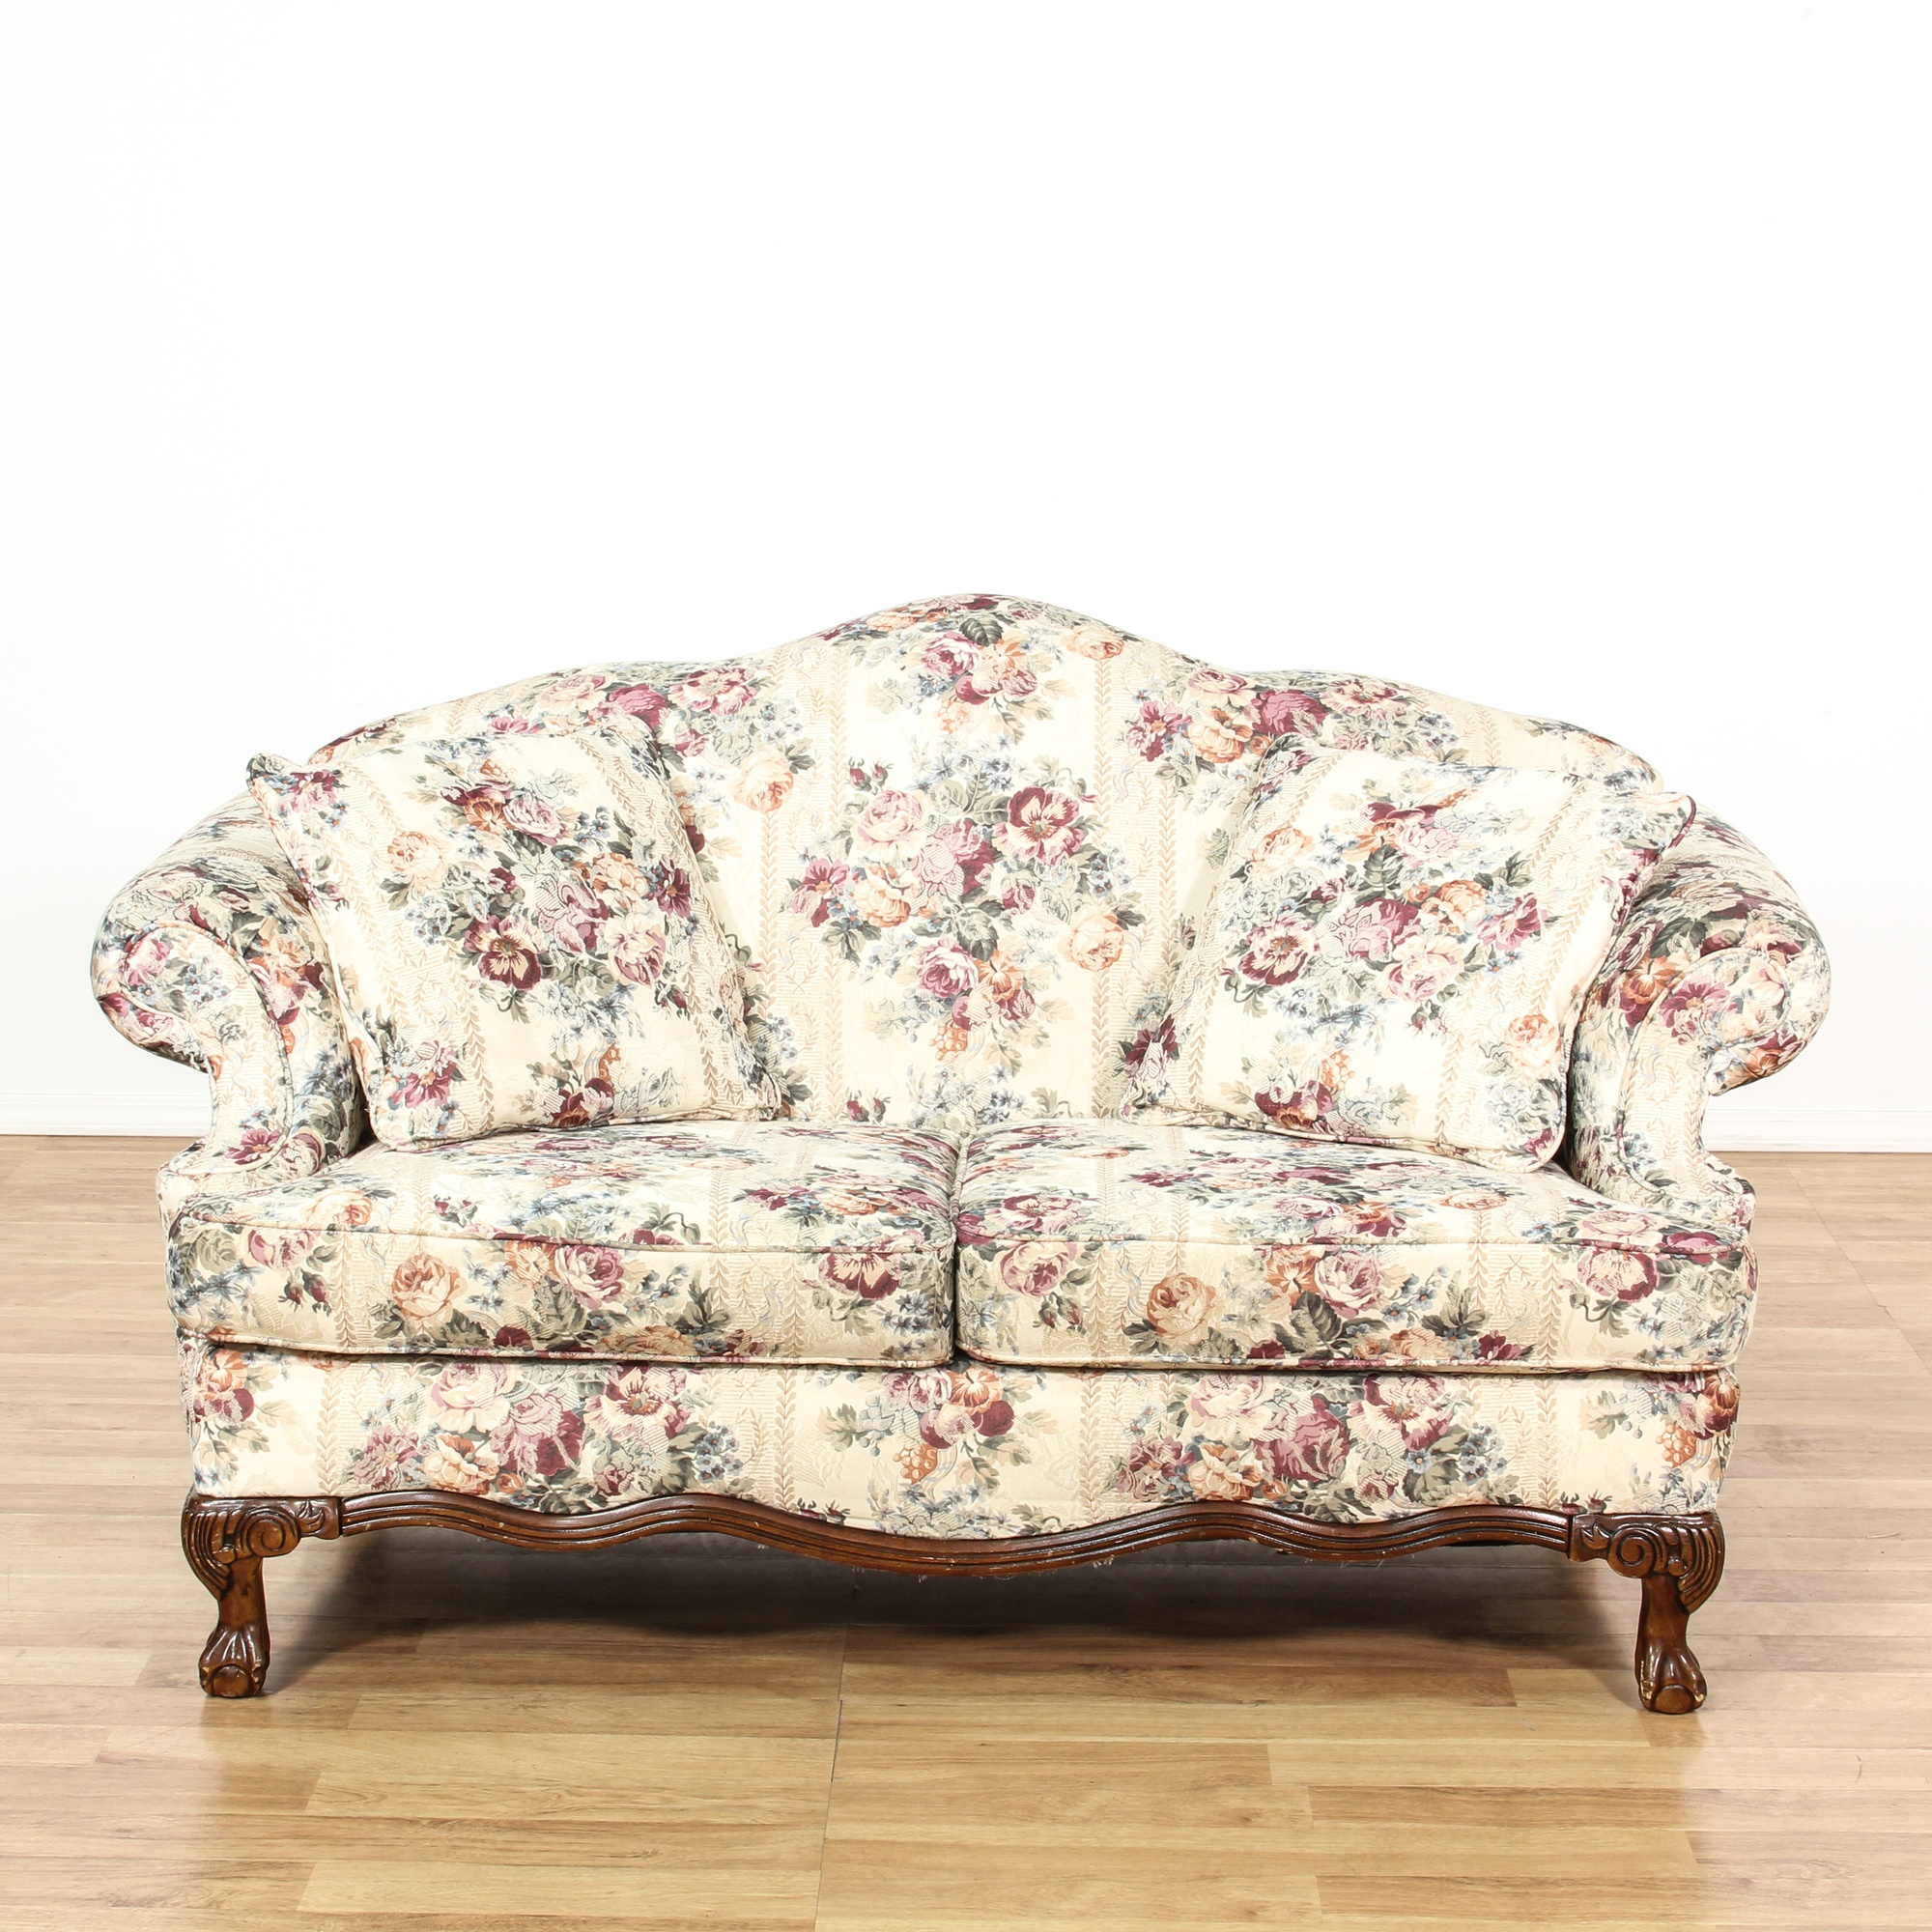 Antique Sofa Loveseat: Curved Back White Floral Loveseat Sofa